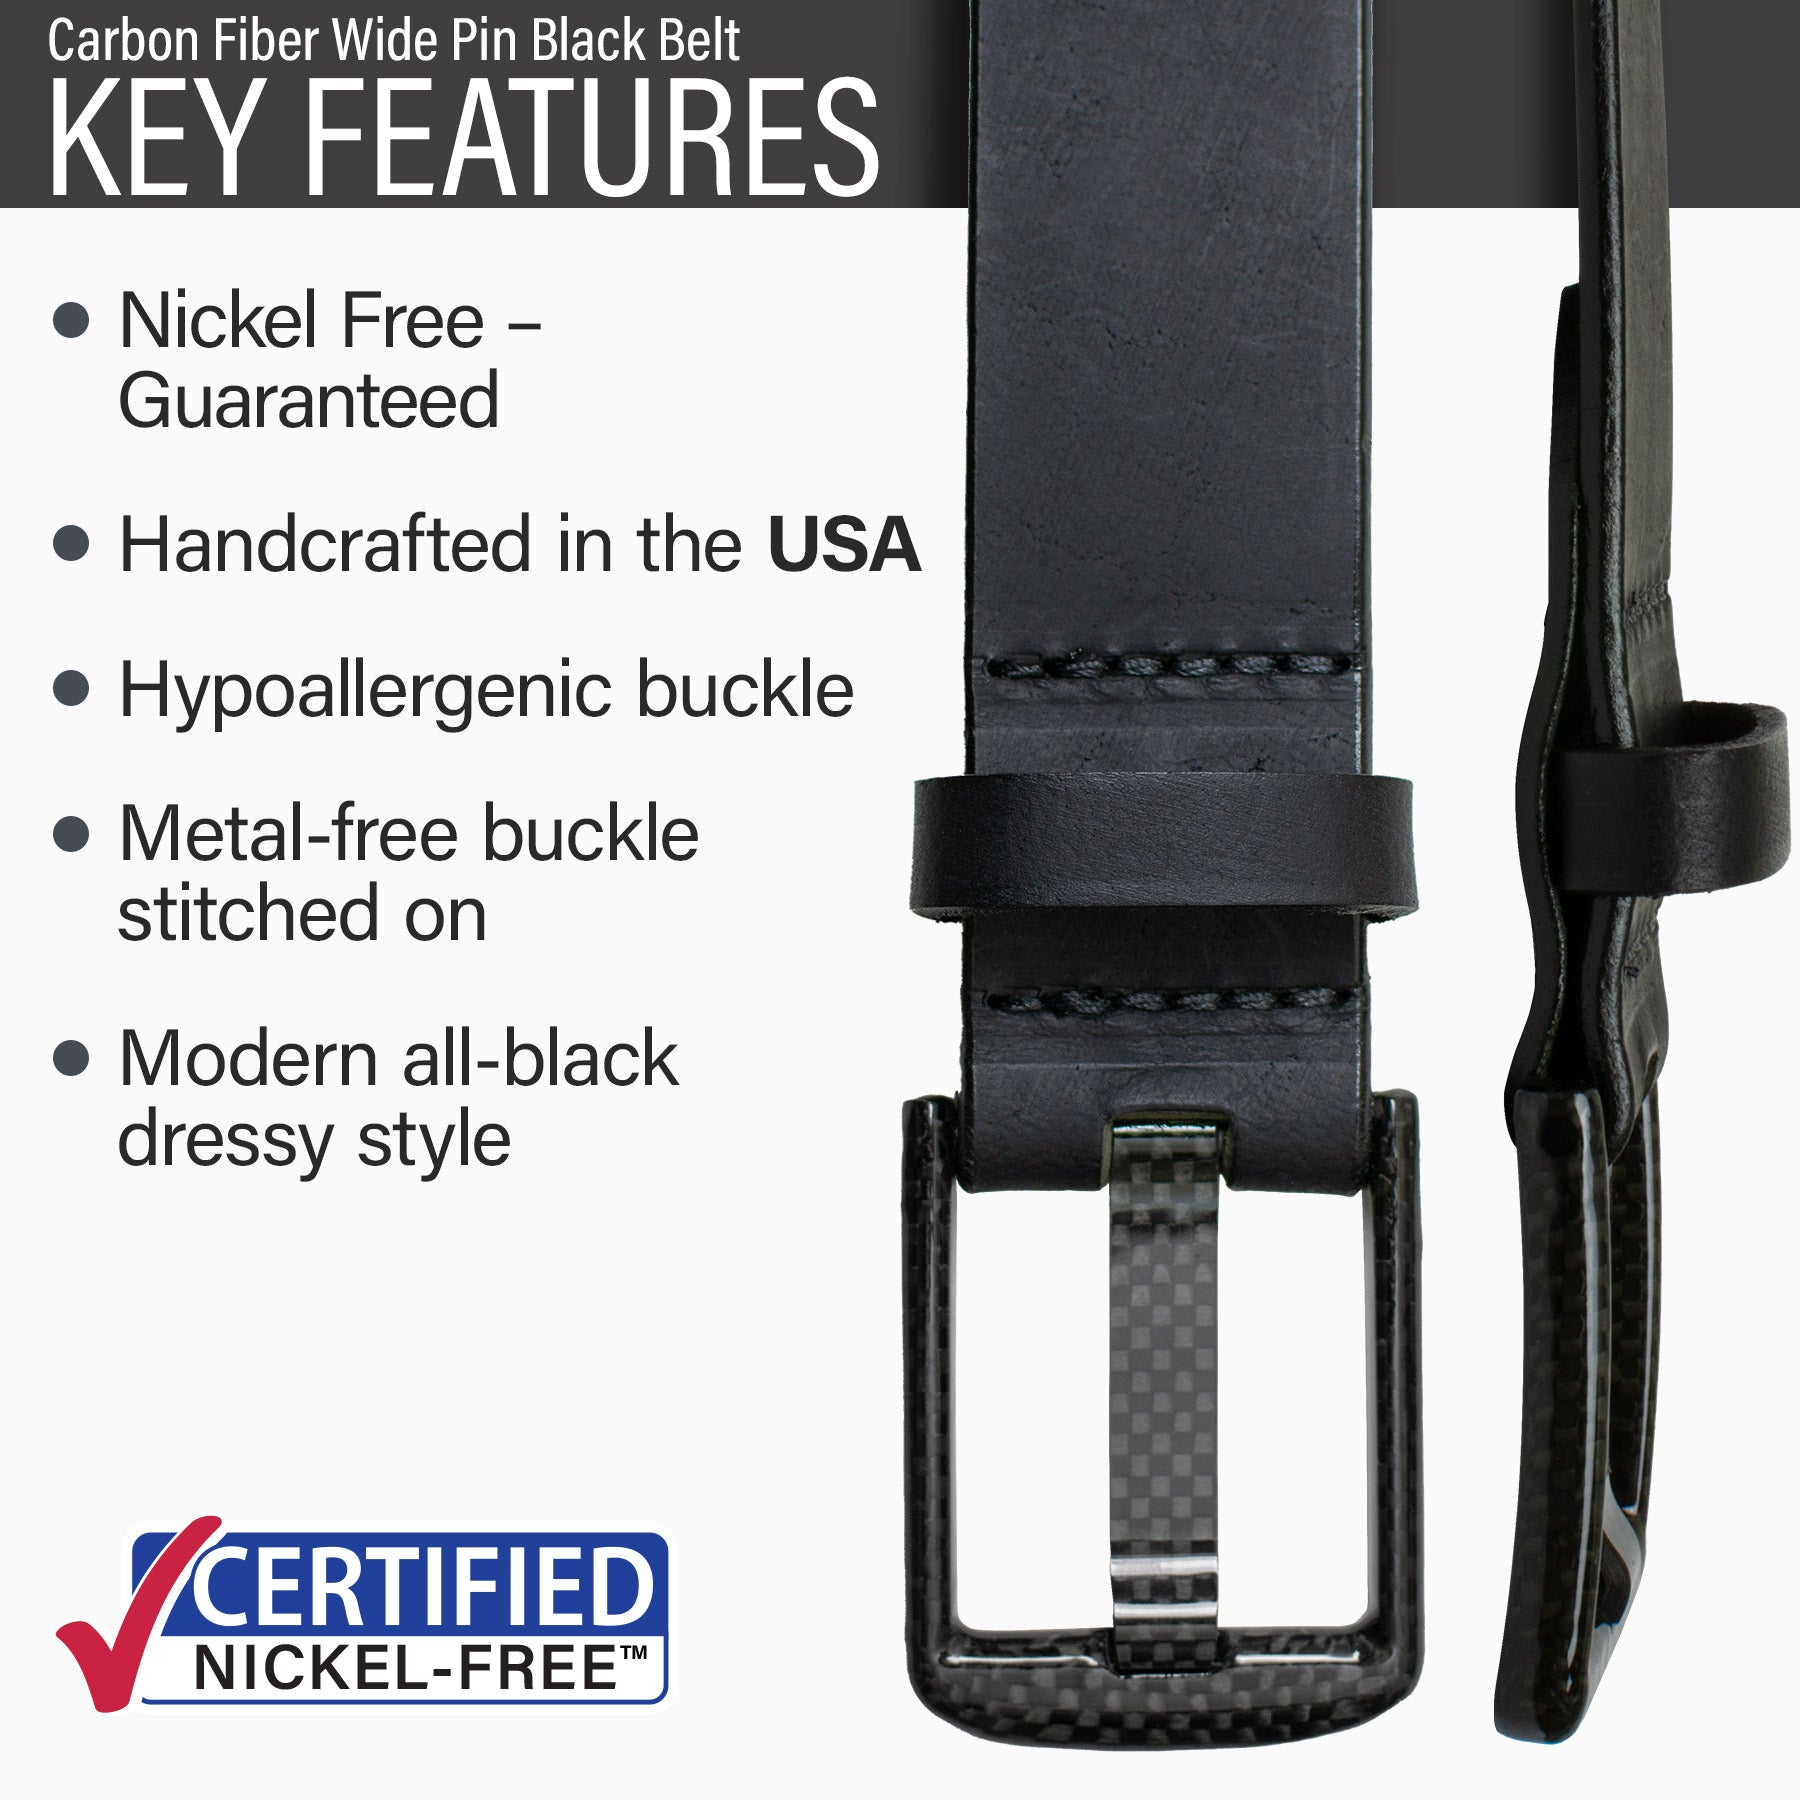 Key features of Carbon Fiber Wide Pin Nickel Free Black Leather Belt | Hypoallergenic buckle, made in the USA, stitched on nickel-free buckle, metal-free carbon fiber buckle, modern style